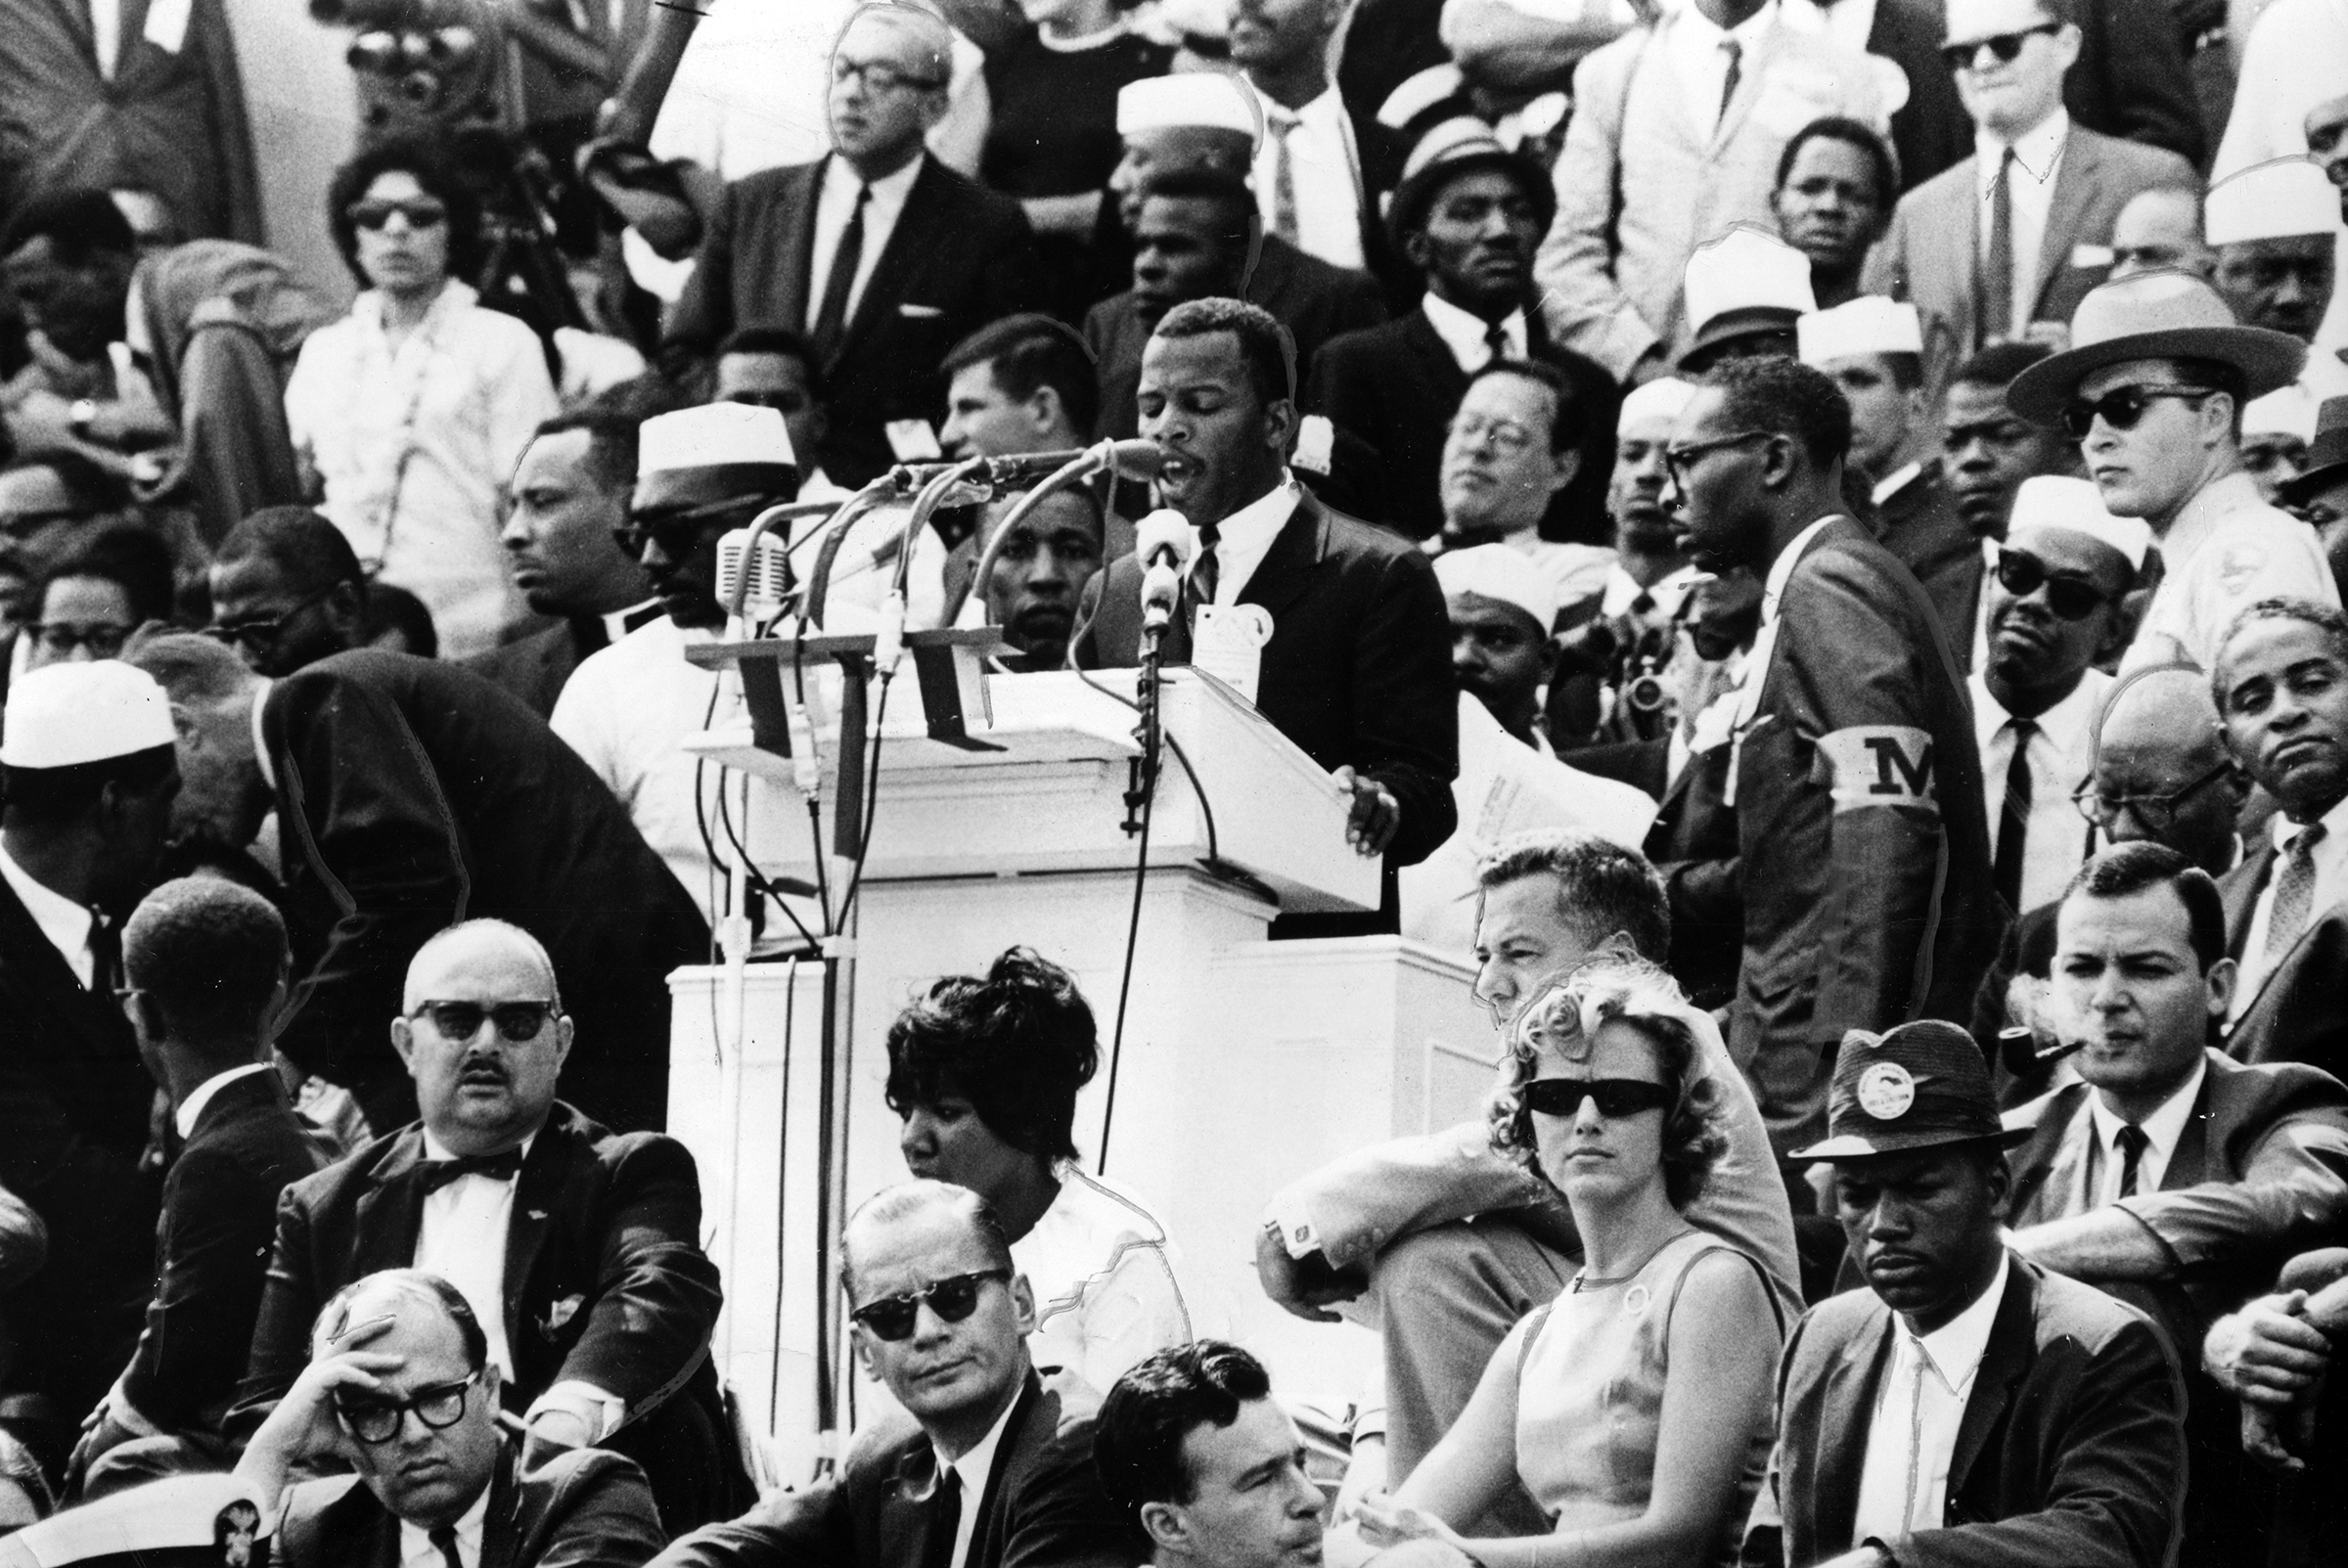 John Lewis of the Student Nonviolent Coordinating Committee addresses a crowd at the 1963 March on Washington.